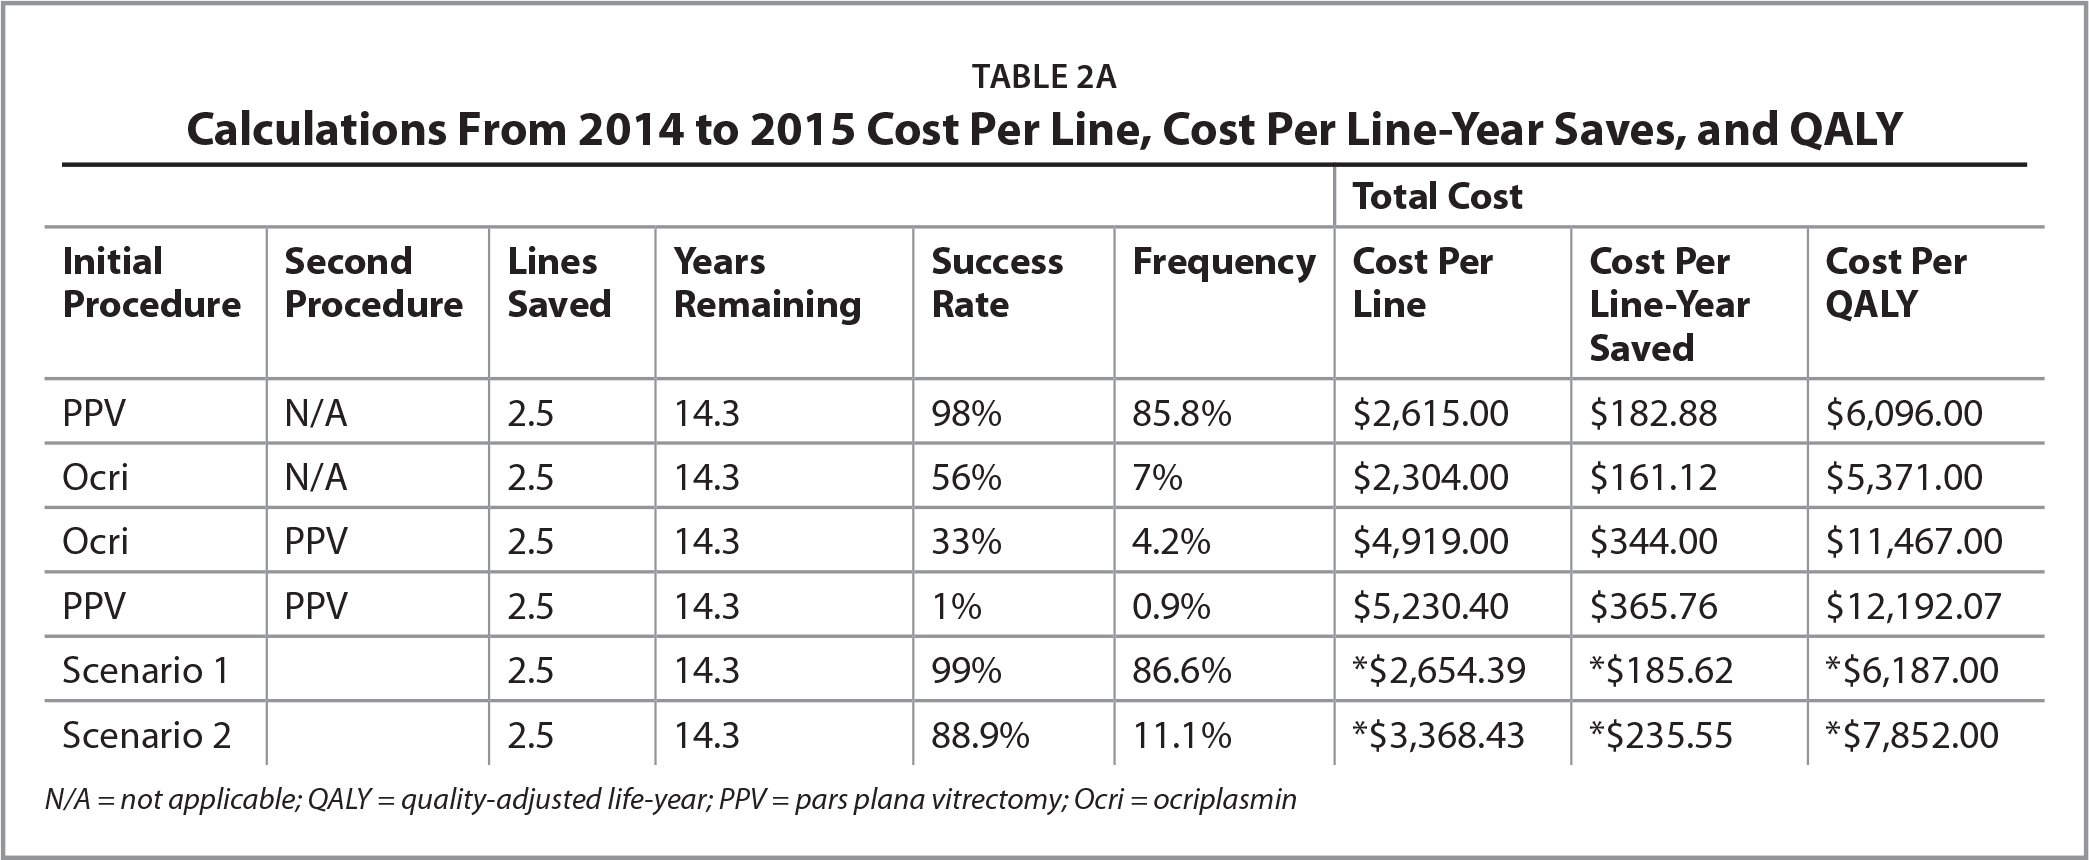 Calculations From 2014 to 2015 Cost Per Line, Cost Per Line-Year Saves, and QALY